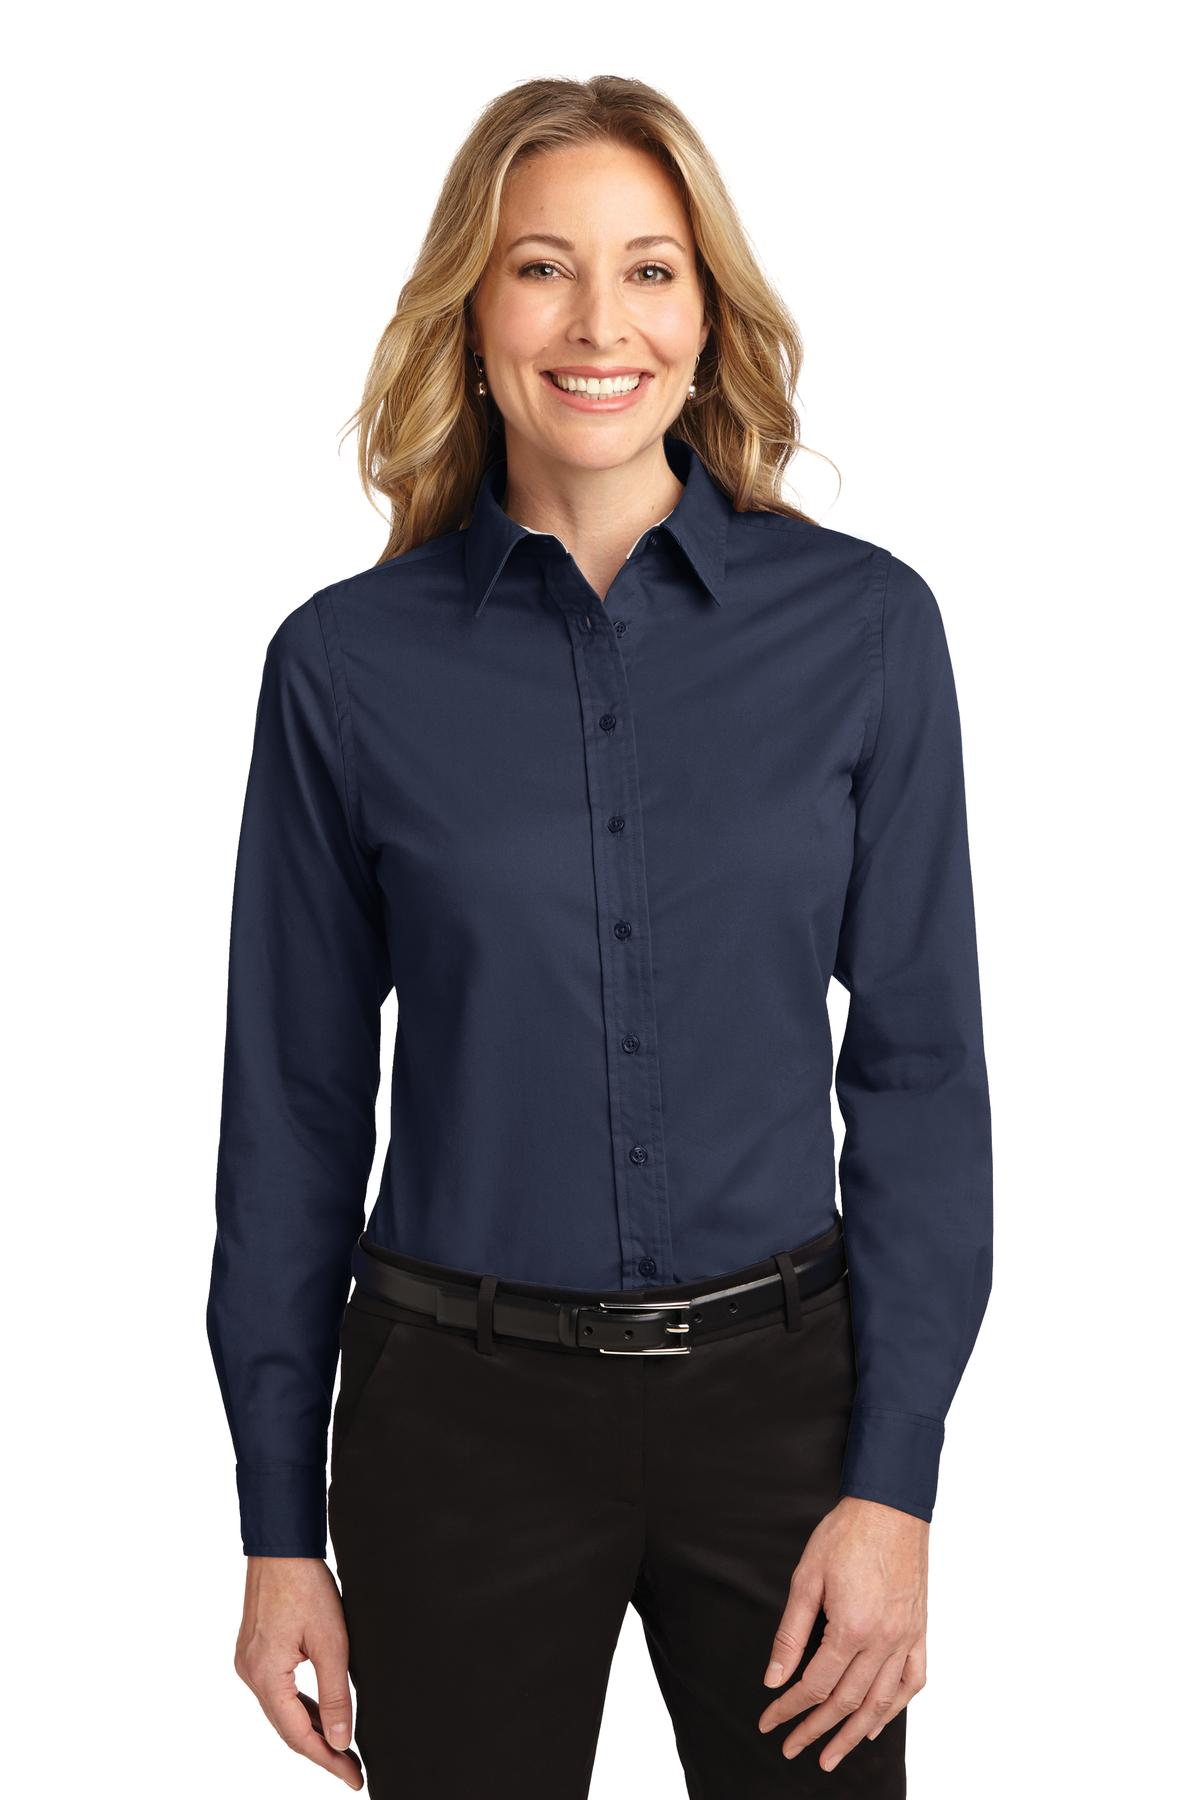 Port Authority ®  Ladies Long Sleeve Easy Care Shirt.  L608 - Navy/ Light Stone